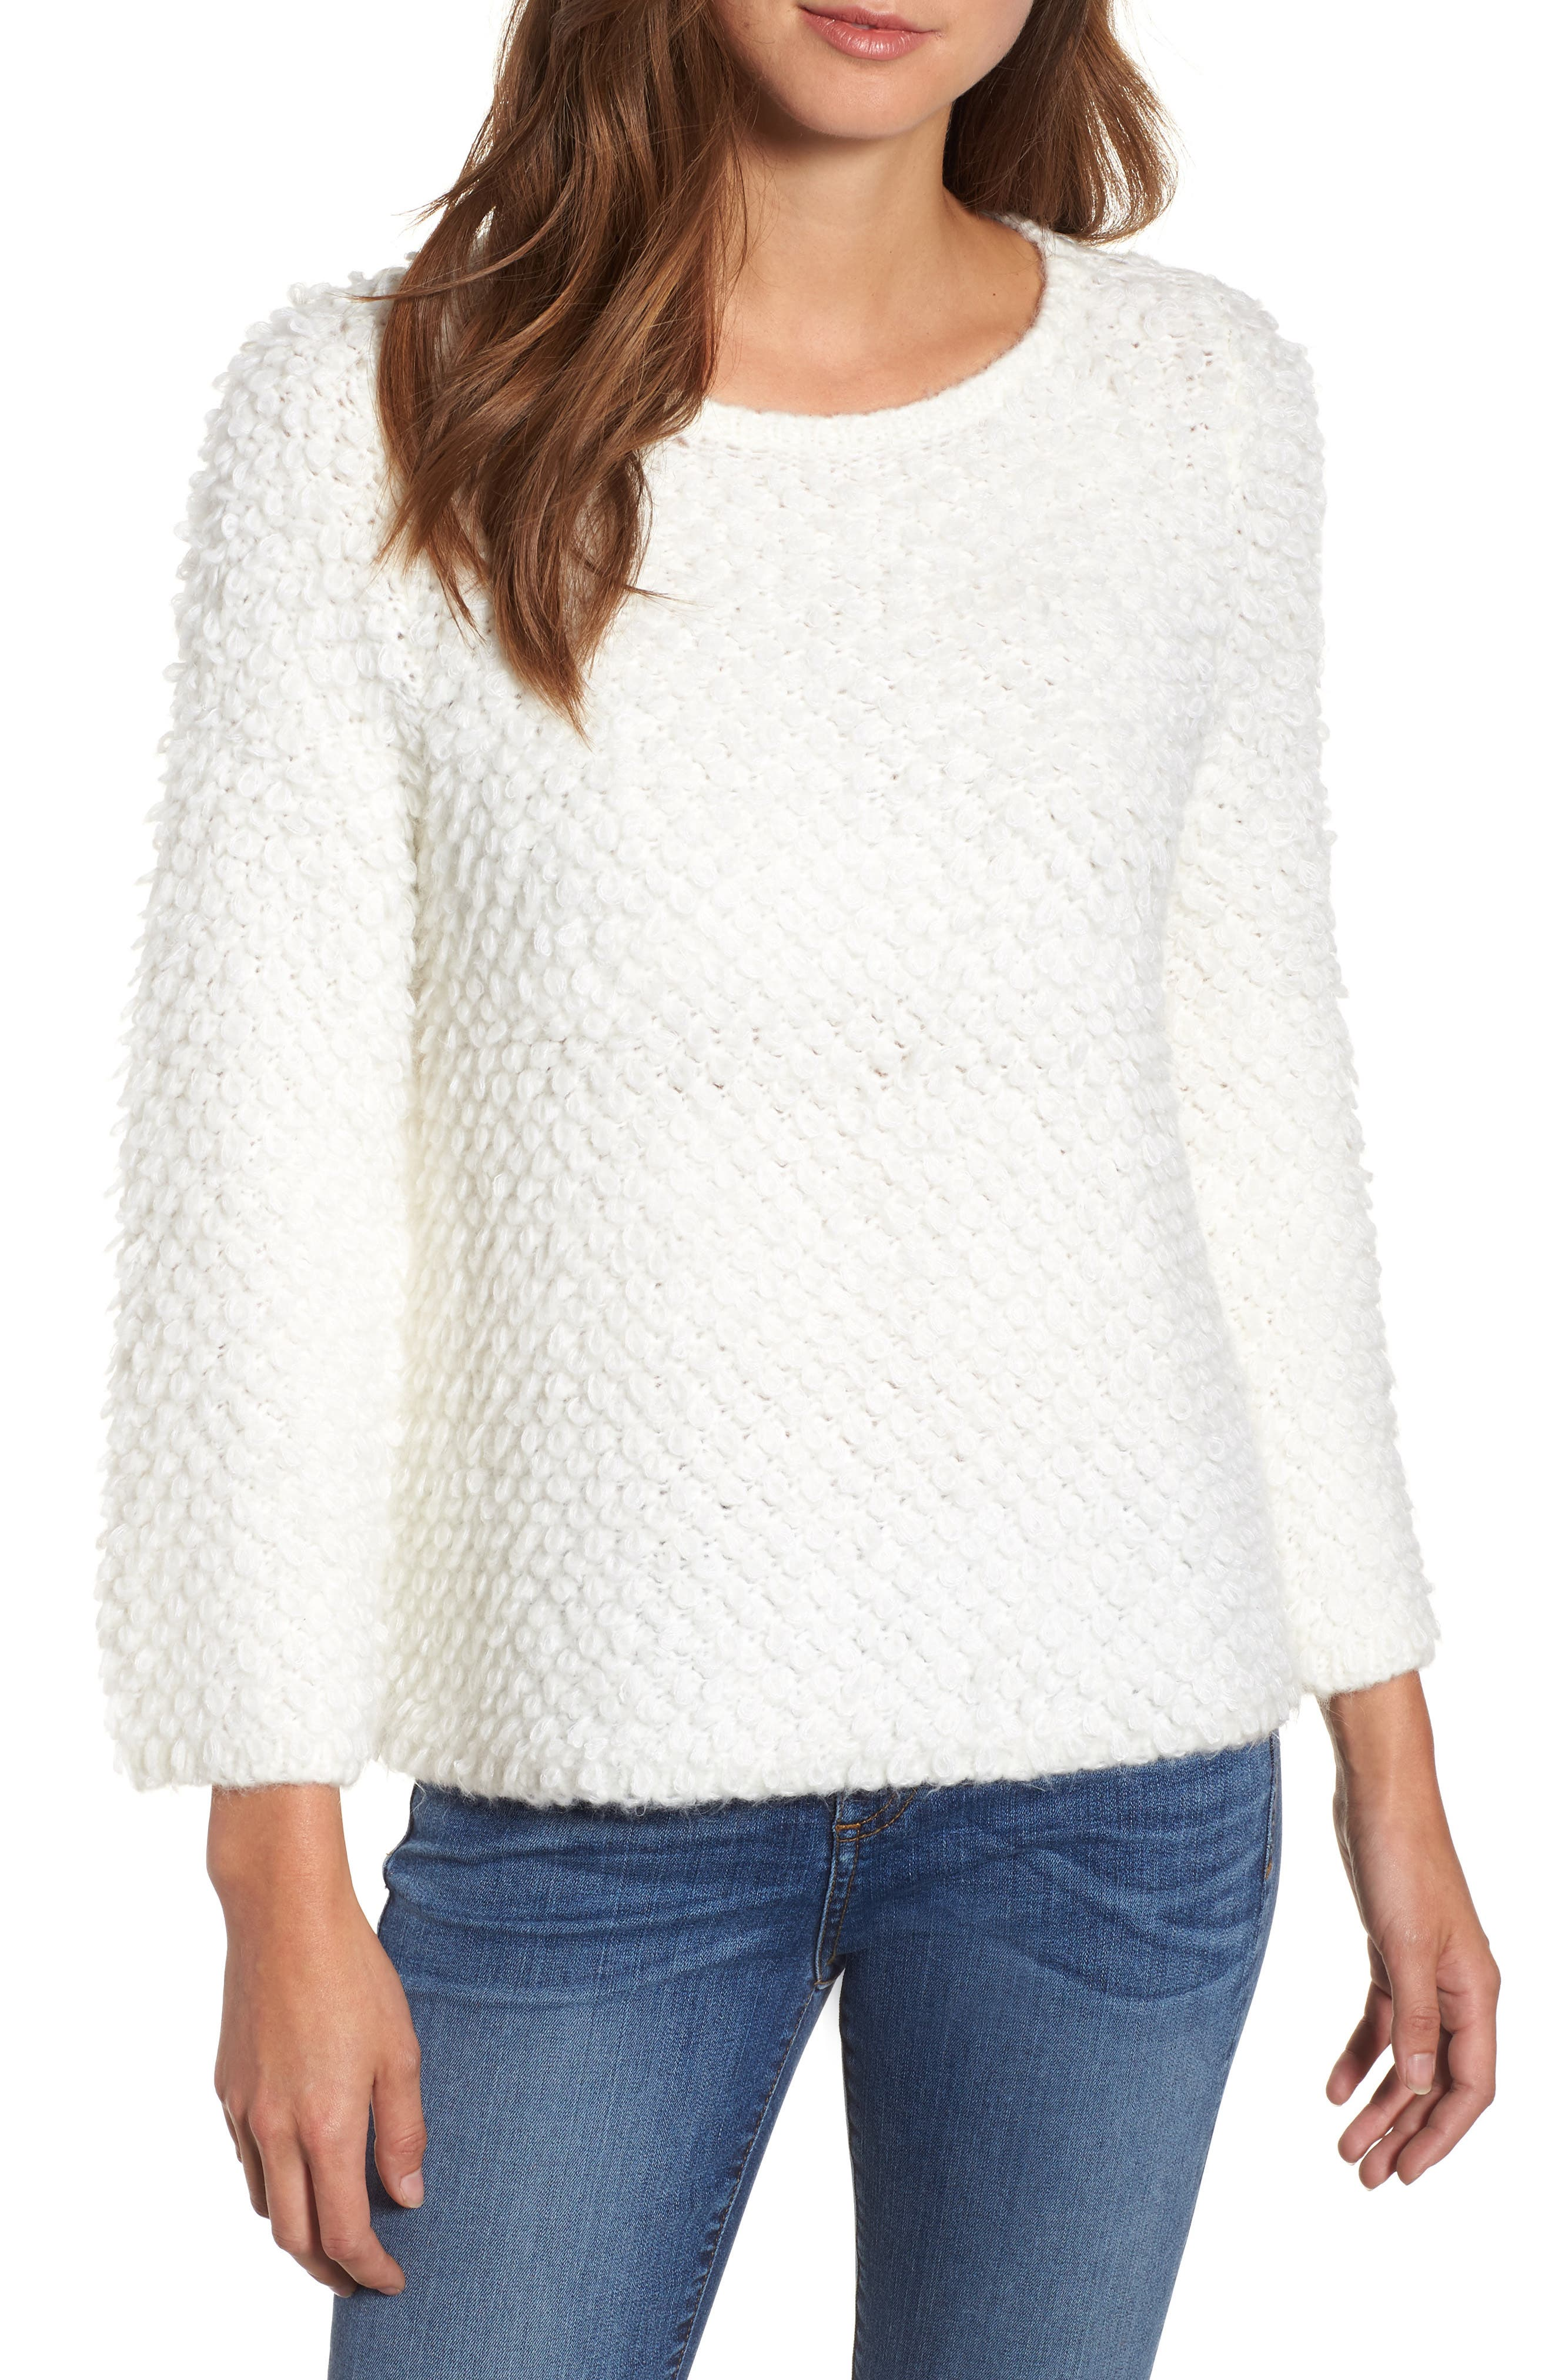 Loop Stitch Crewneck Sweater,                             Main thumbnail 1, color,                             Ivory Cloud